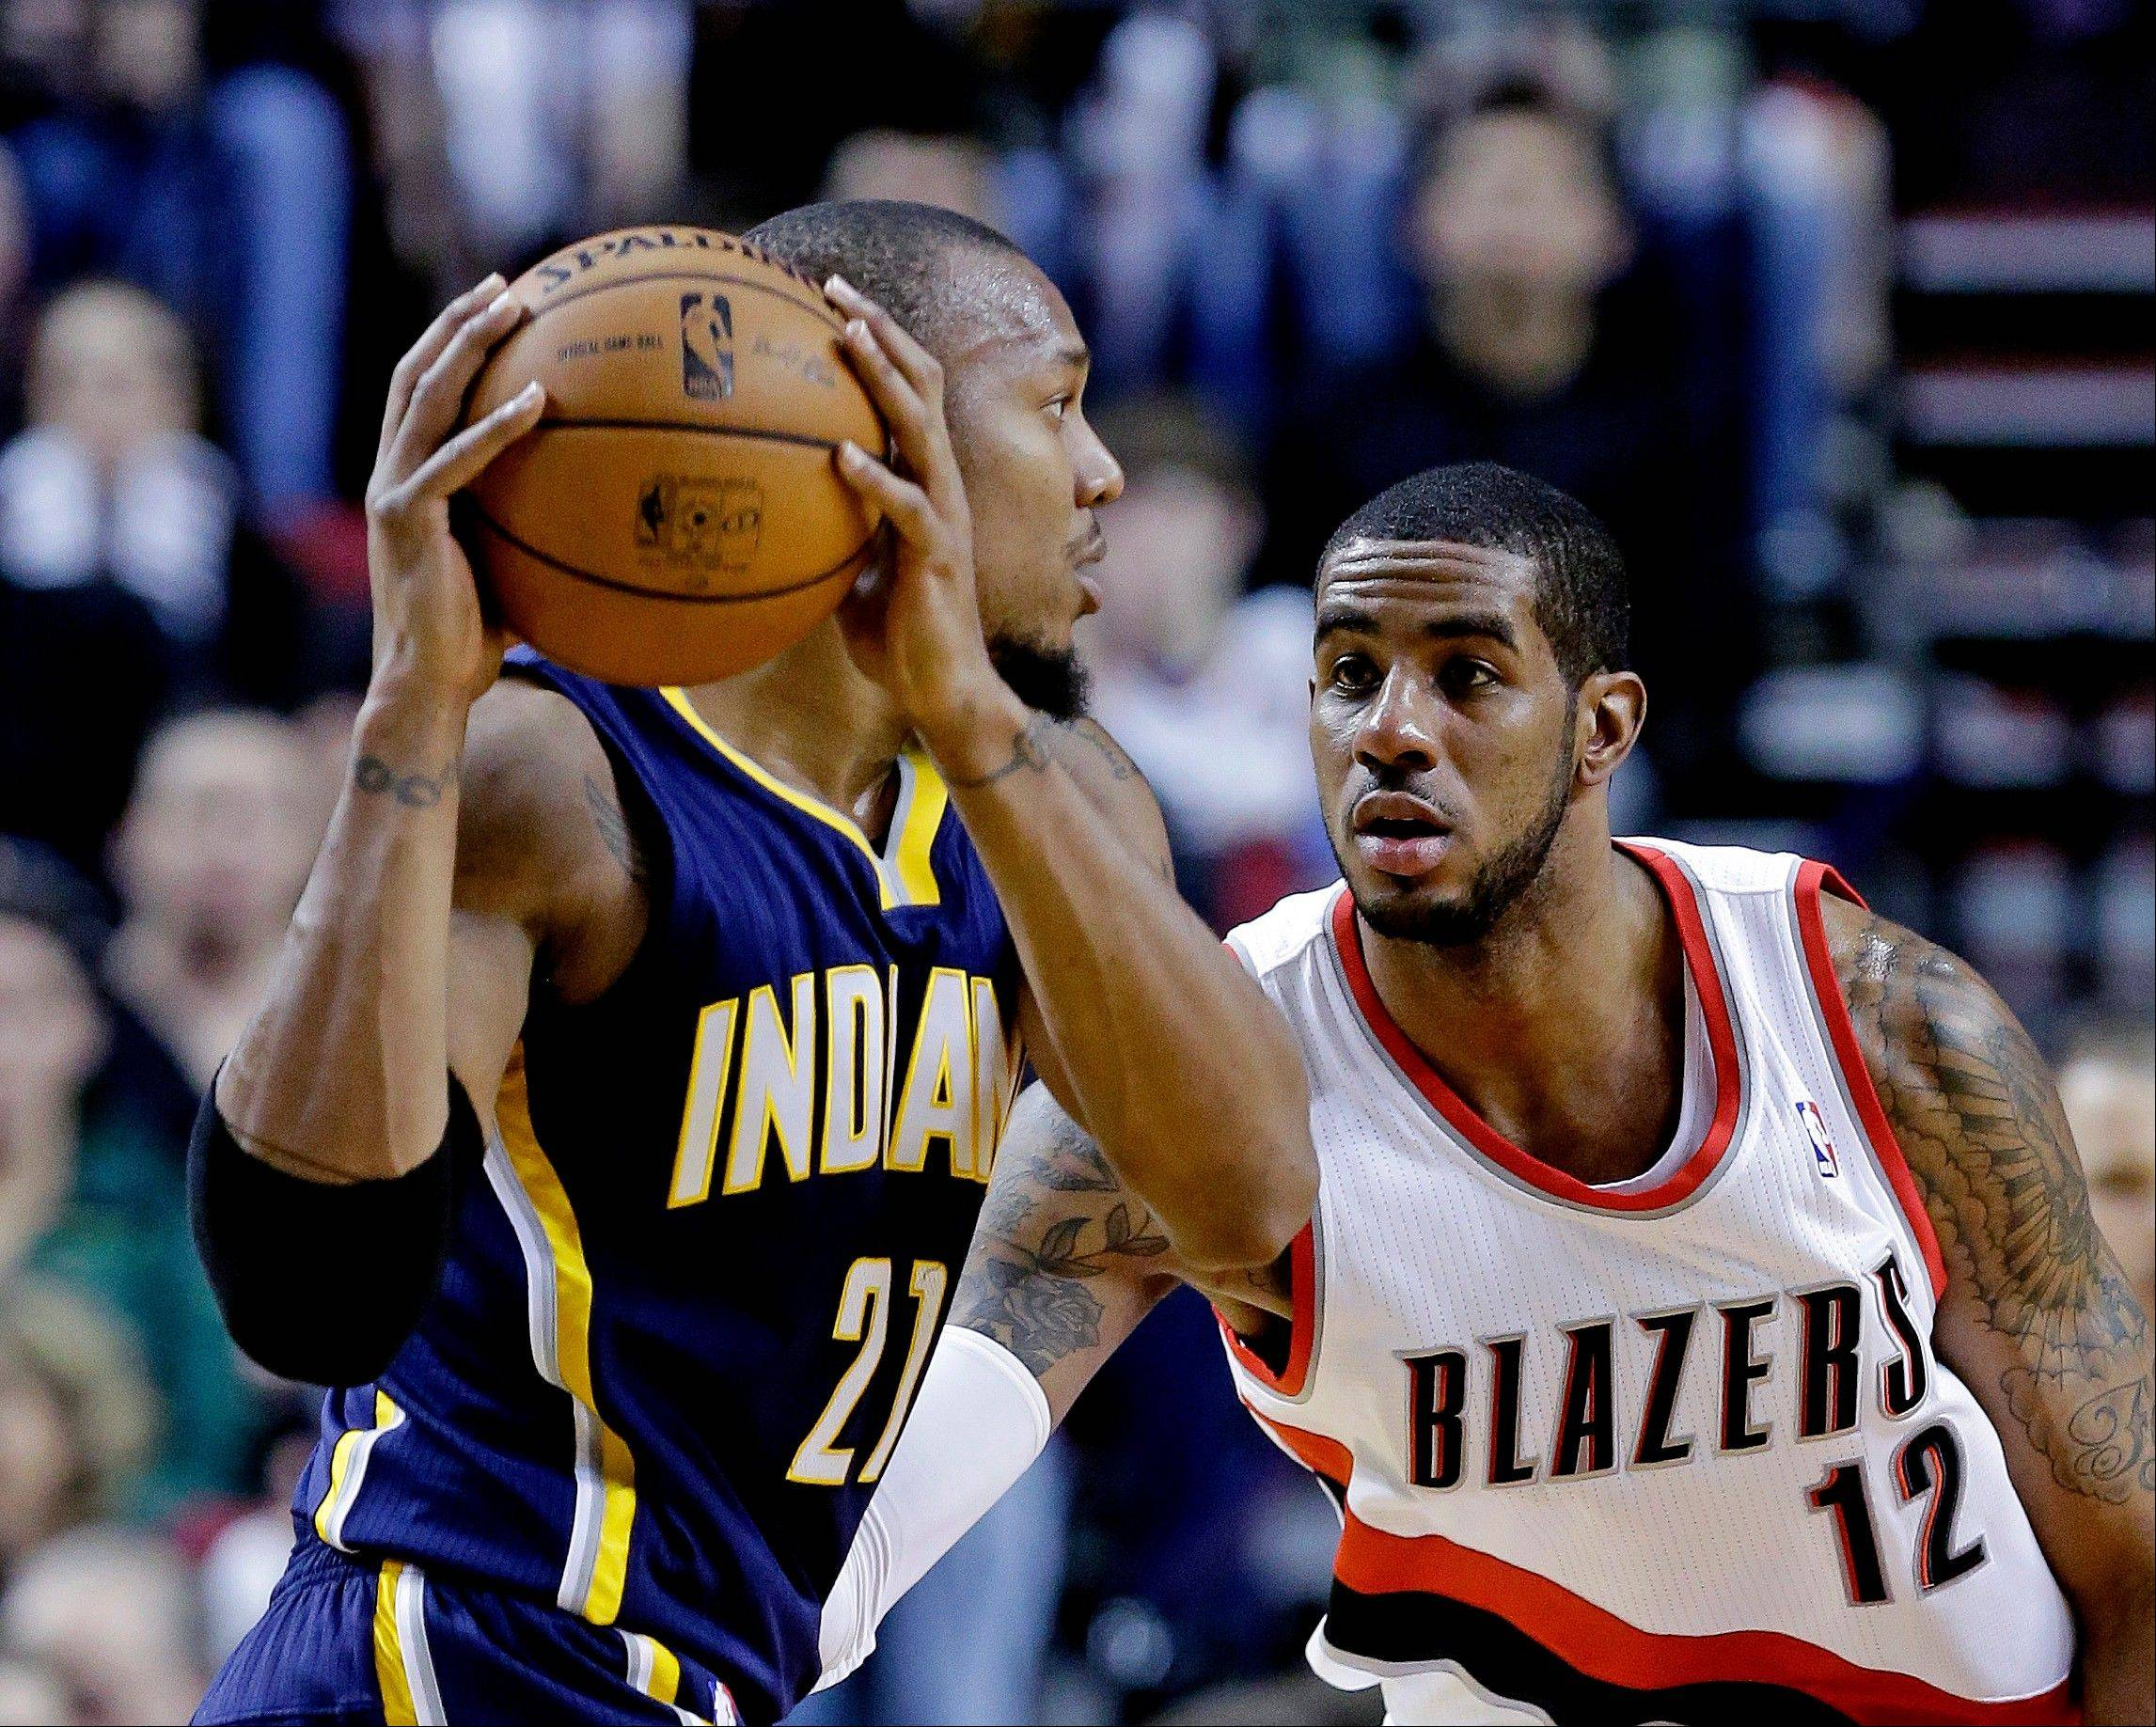 Portland Trail Blazers forward LaMarcus Aldridge, right, defends Indiana Pacers forward David West during the first quarter of an NBA basketball game in Portland, Ore., Wednesday, Jan. 23, 2013.